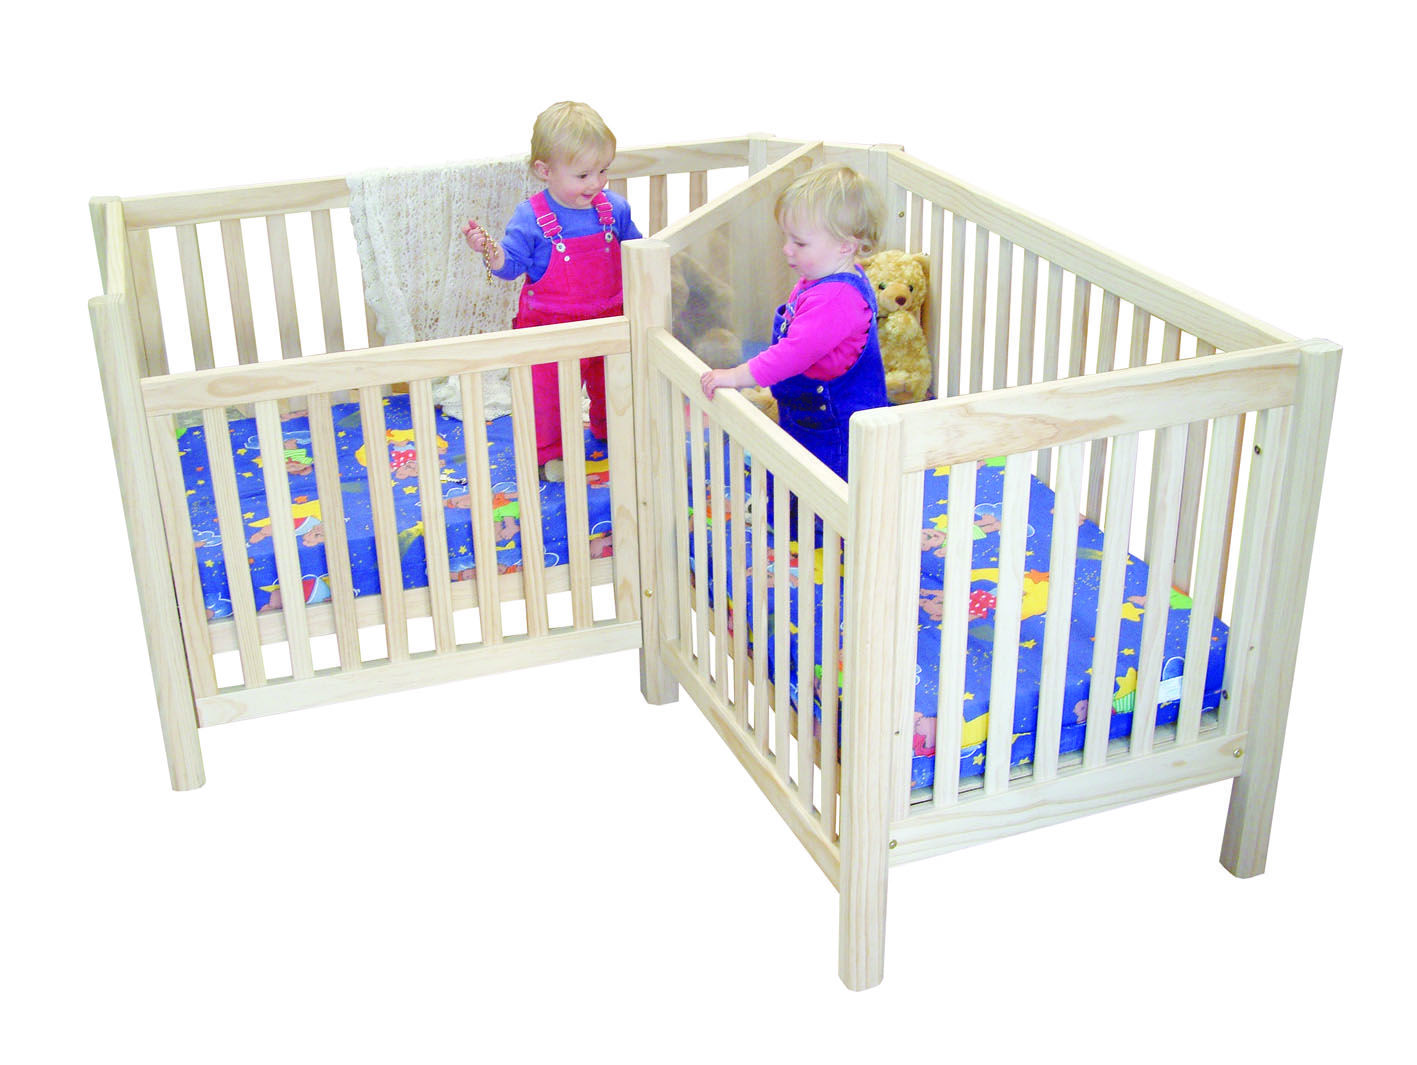 Mini Meise Pin By Ladonna Vodron On Twin Ideas | Twin Baby Beds, Baby Cribs For Twins, Twin Cribs